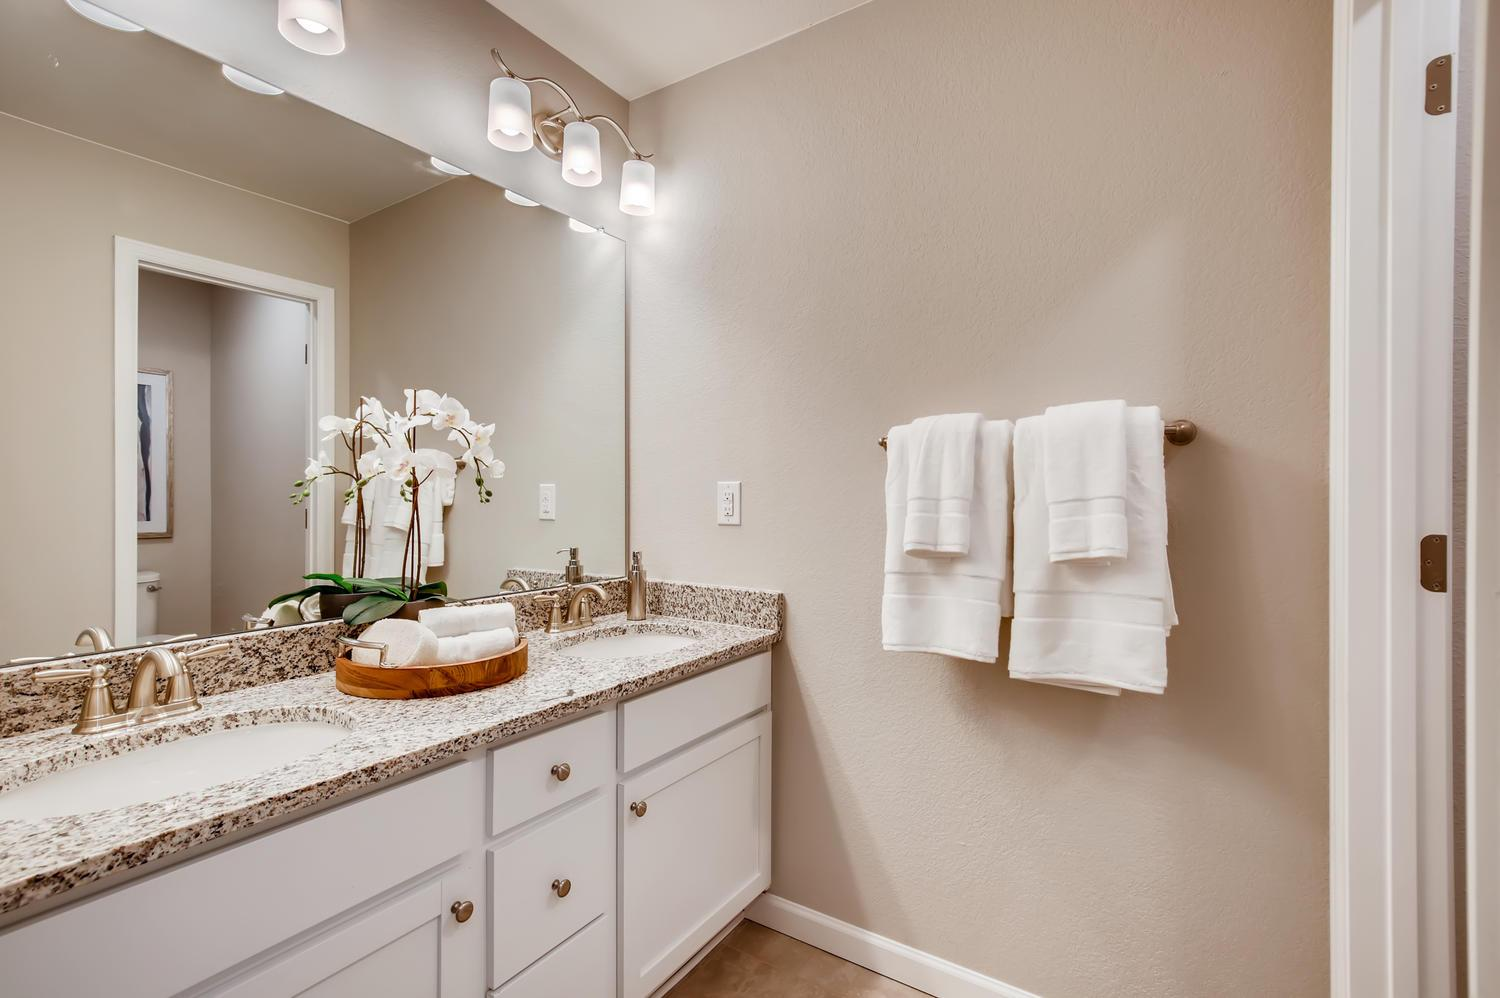 Bathroom featured in the Copper (Residence 29203) By Century Communities in Denver, CO